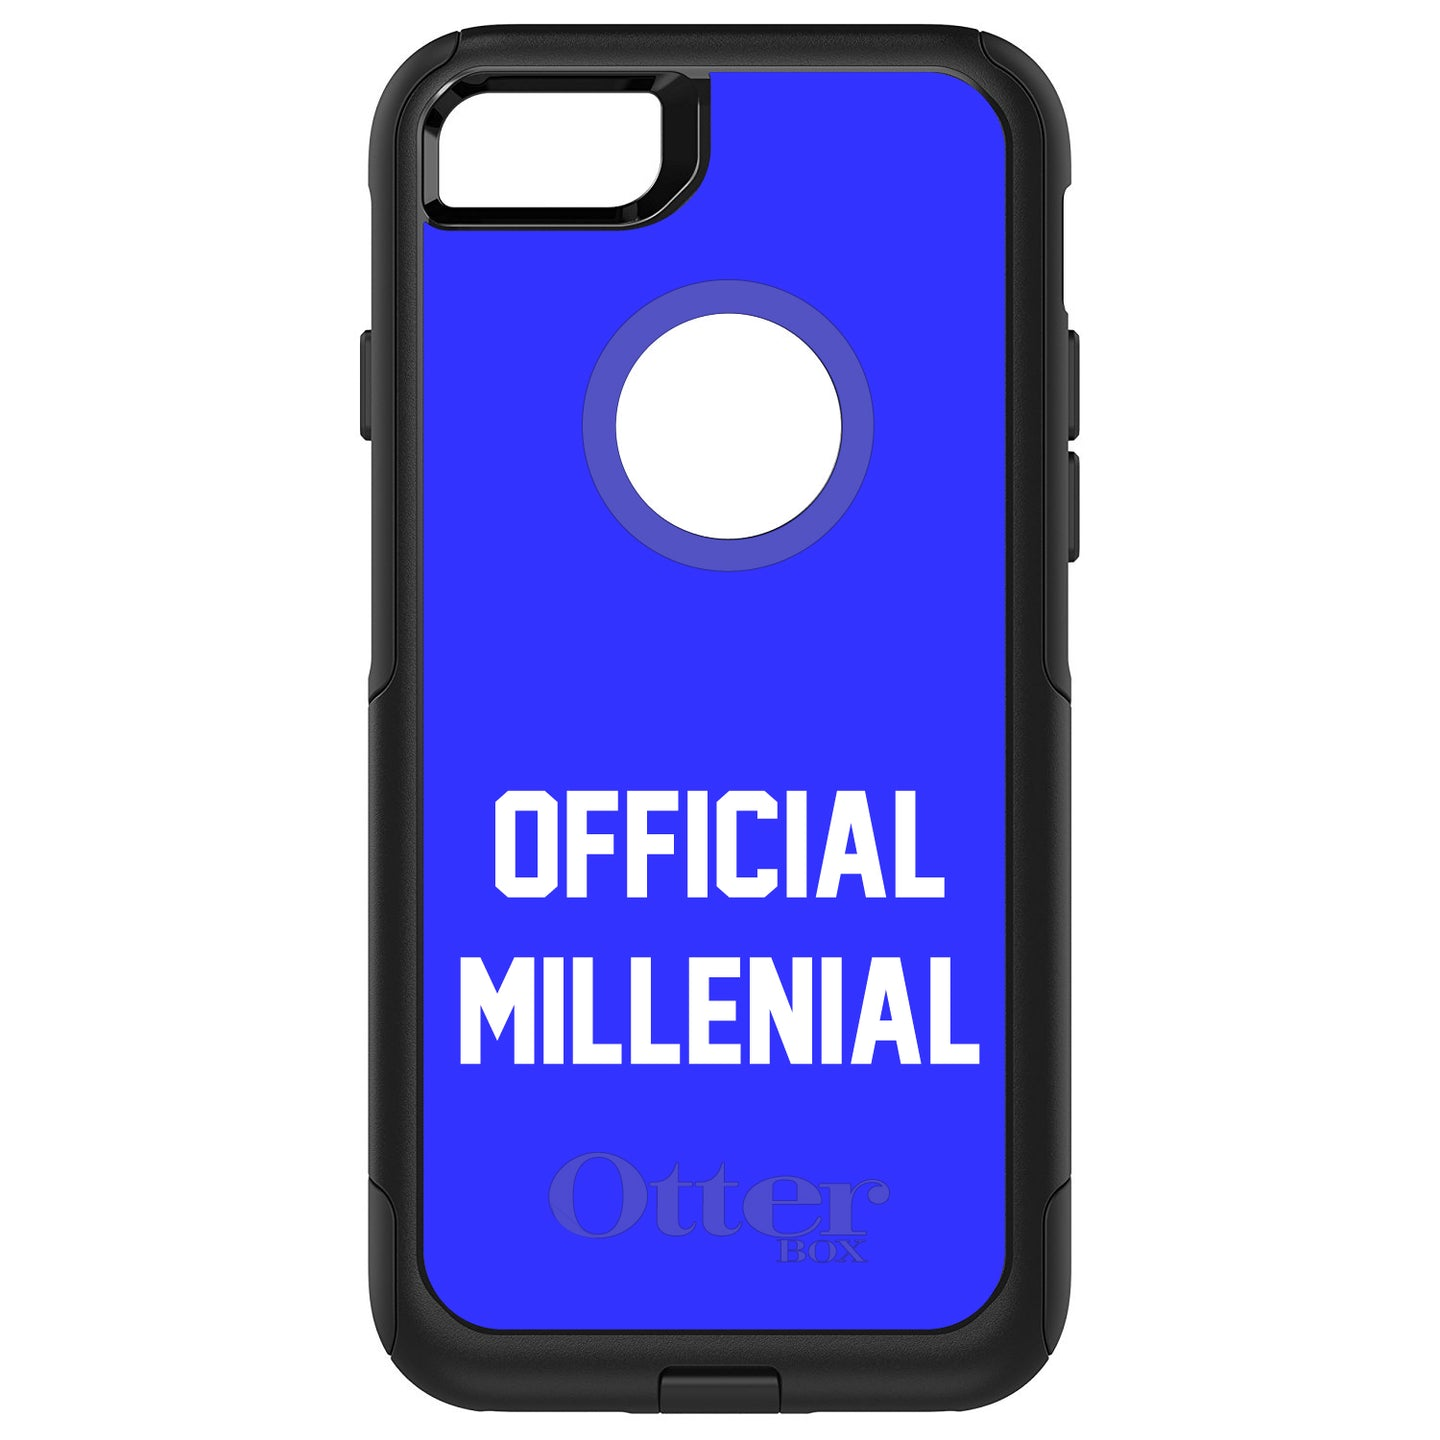 DistinctInk™ OtterBox Commuter Series Case for Apple iPhone or Samsung Galaxy - Official Millenial - Blue & White